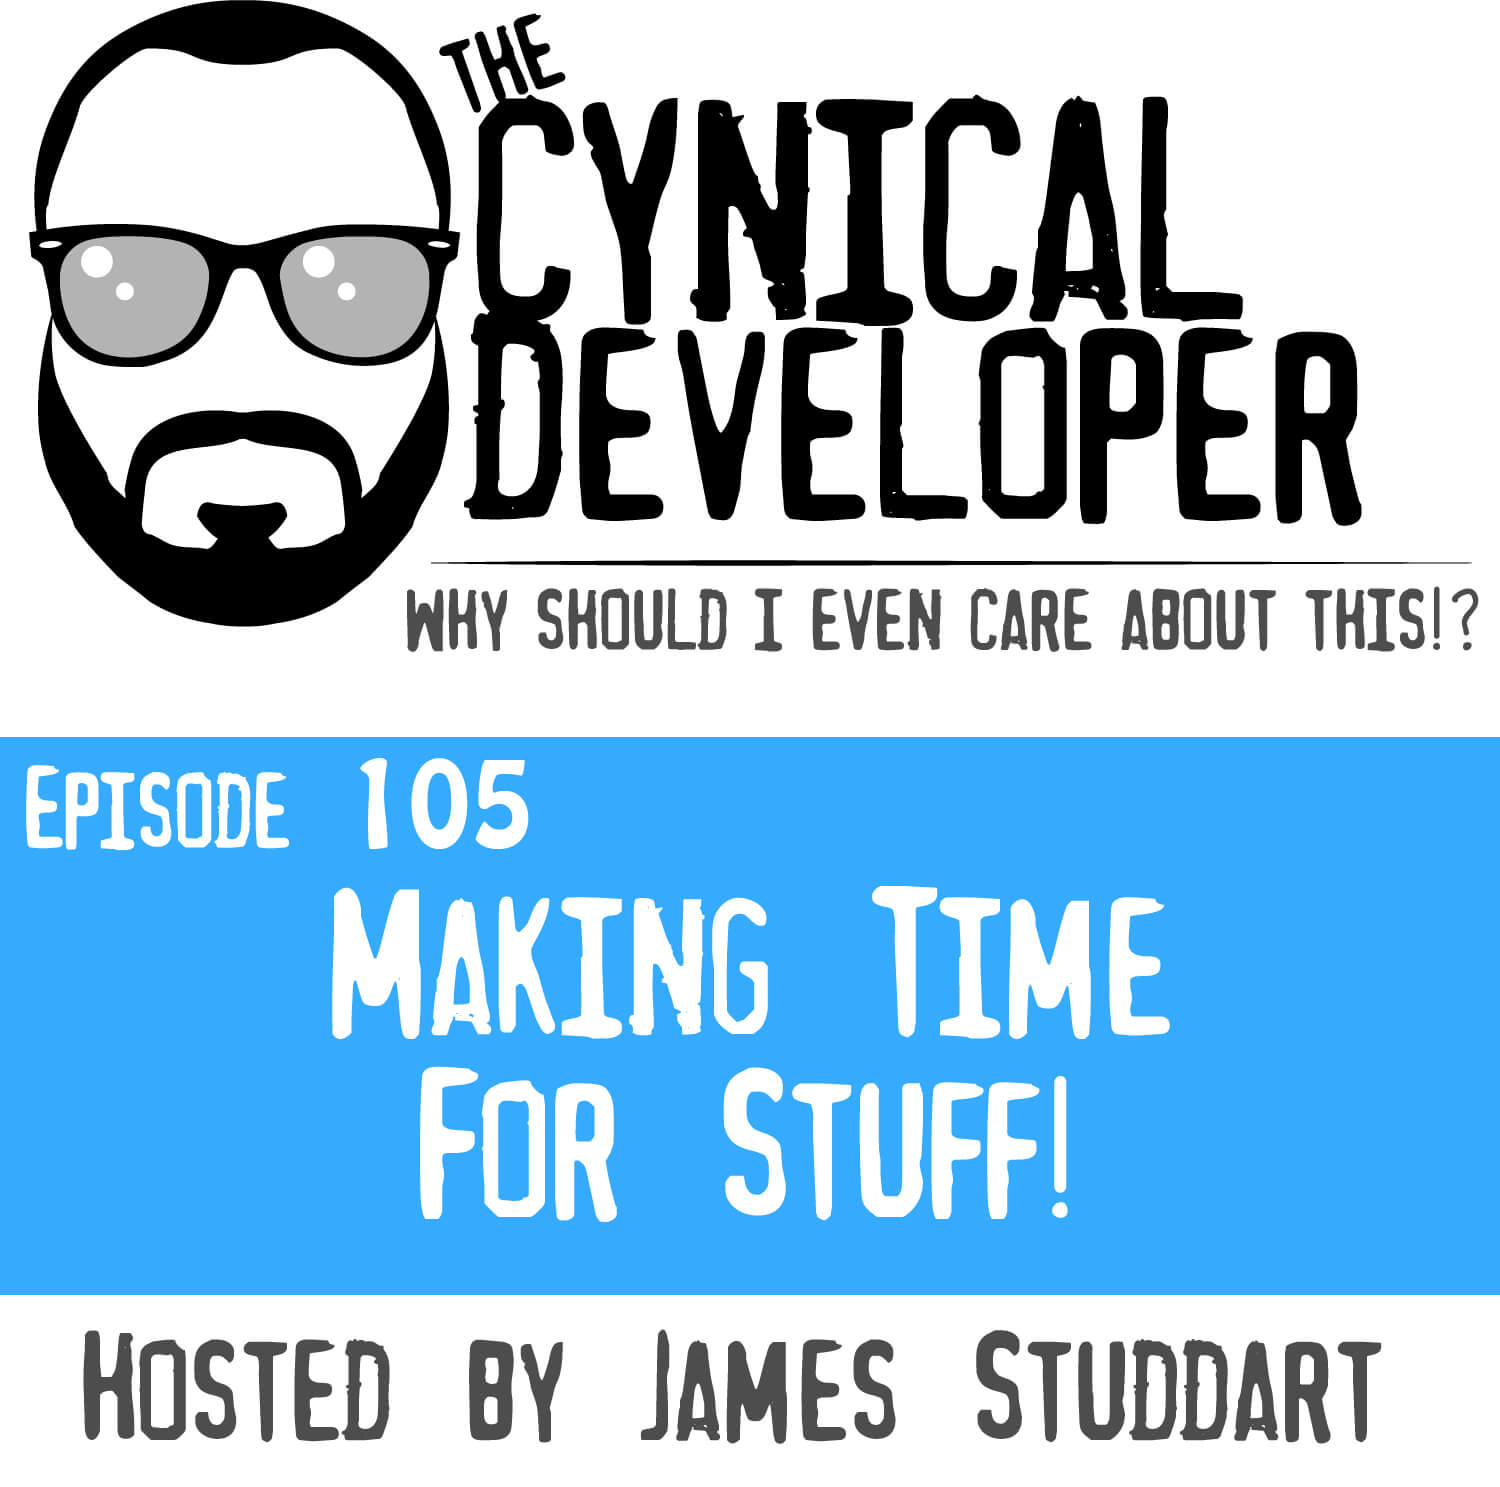 Episode 105 - Making Time for Stuff!